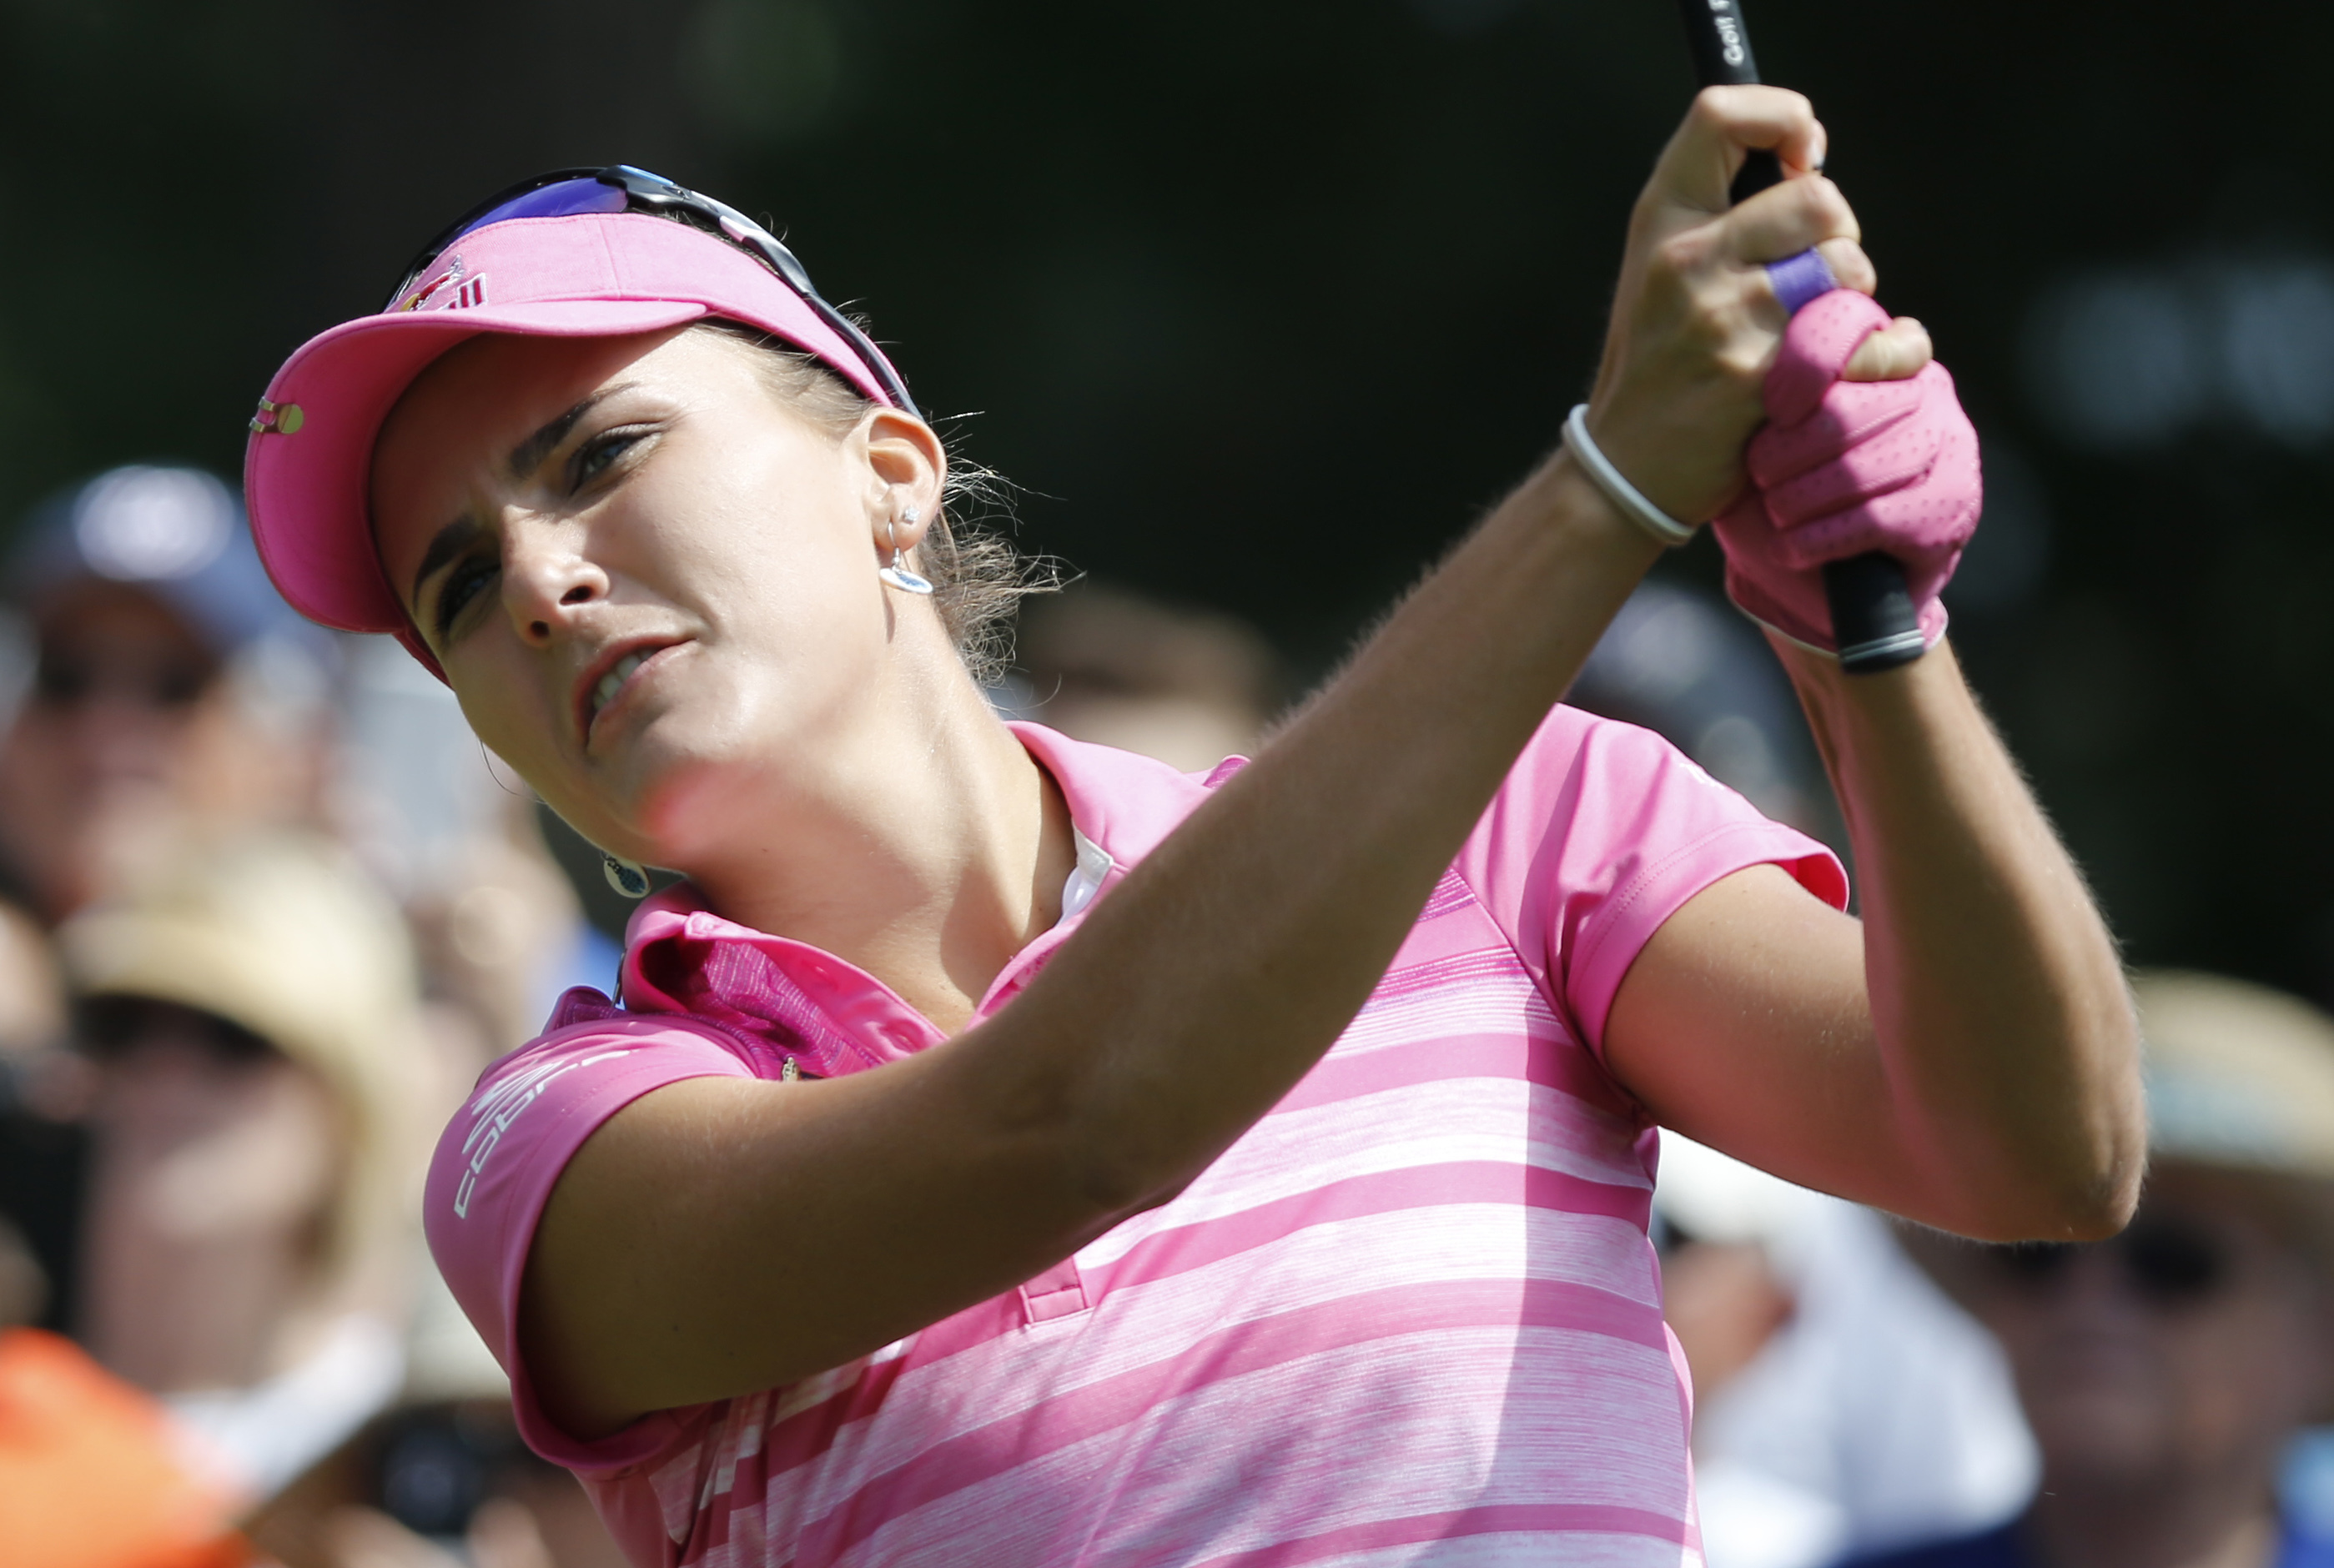 Lexi Thompson watches her tee shot on the second hole during the third round of the Kingsmill Championship LPGA golf tournament in Williamsburg, Va., Saturday, May 20, 2017. (AP Photo/Steve Helber)